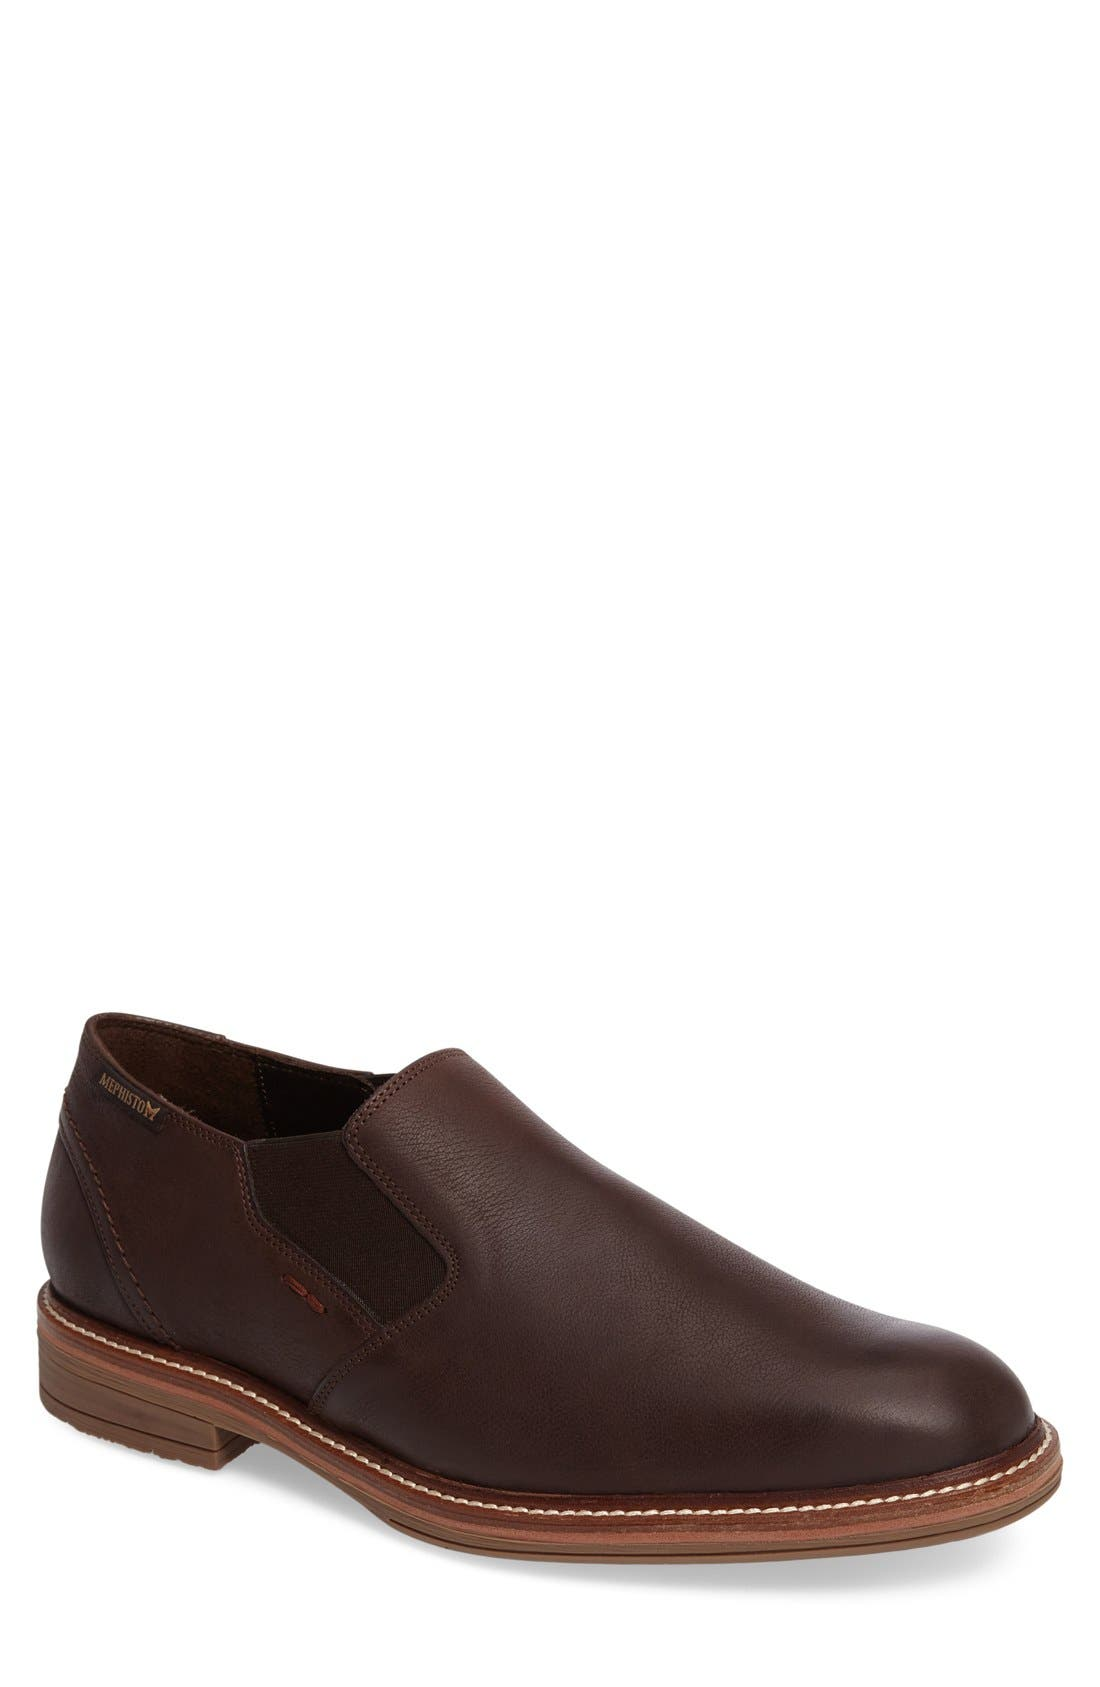 Mephisto Wilco Gored Slip-On (Men)